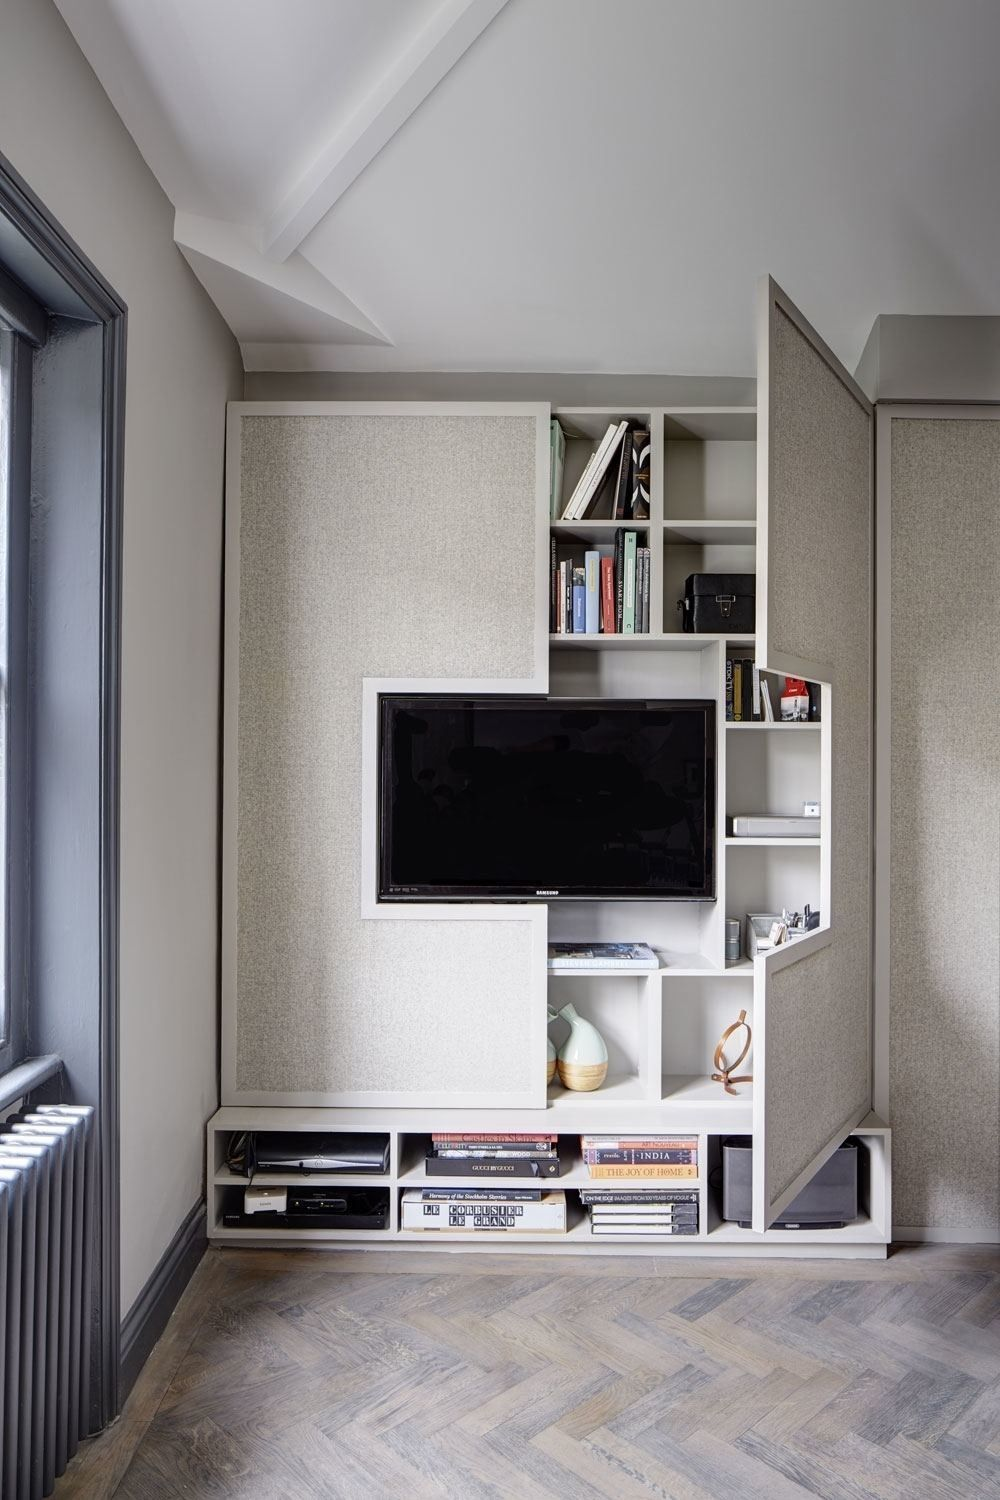 14 Hidden Storage Ideas For Small Spaces Brit Co Apartment